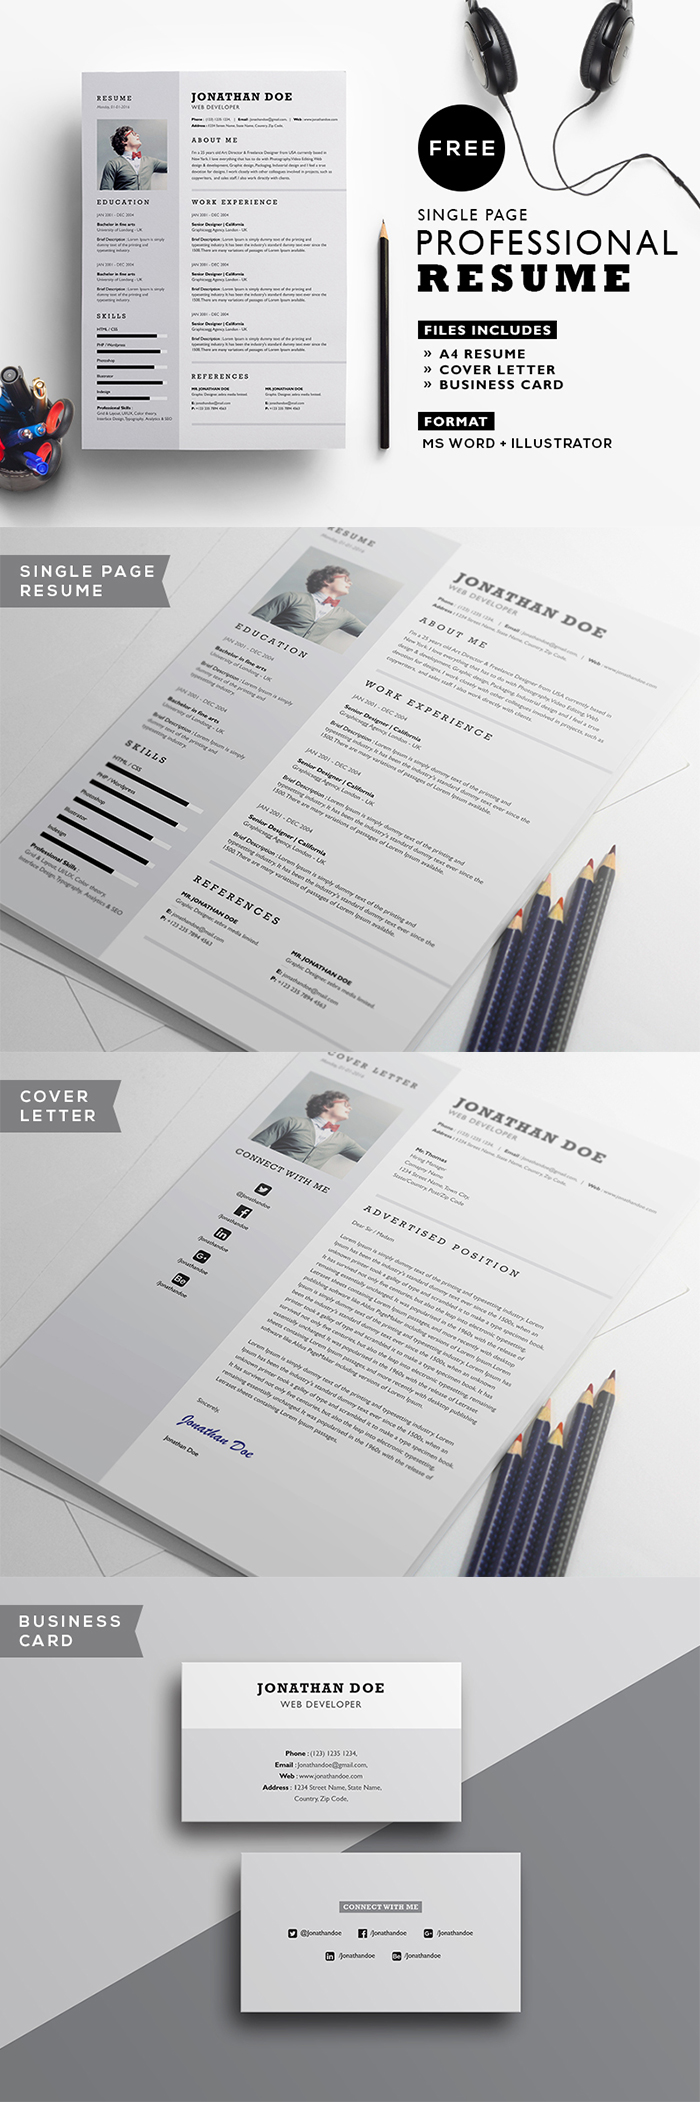 free professional resume template 2 - Free Professional Resume Templates